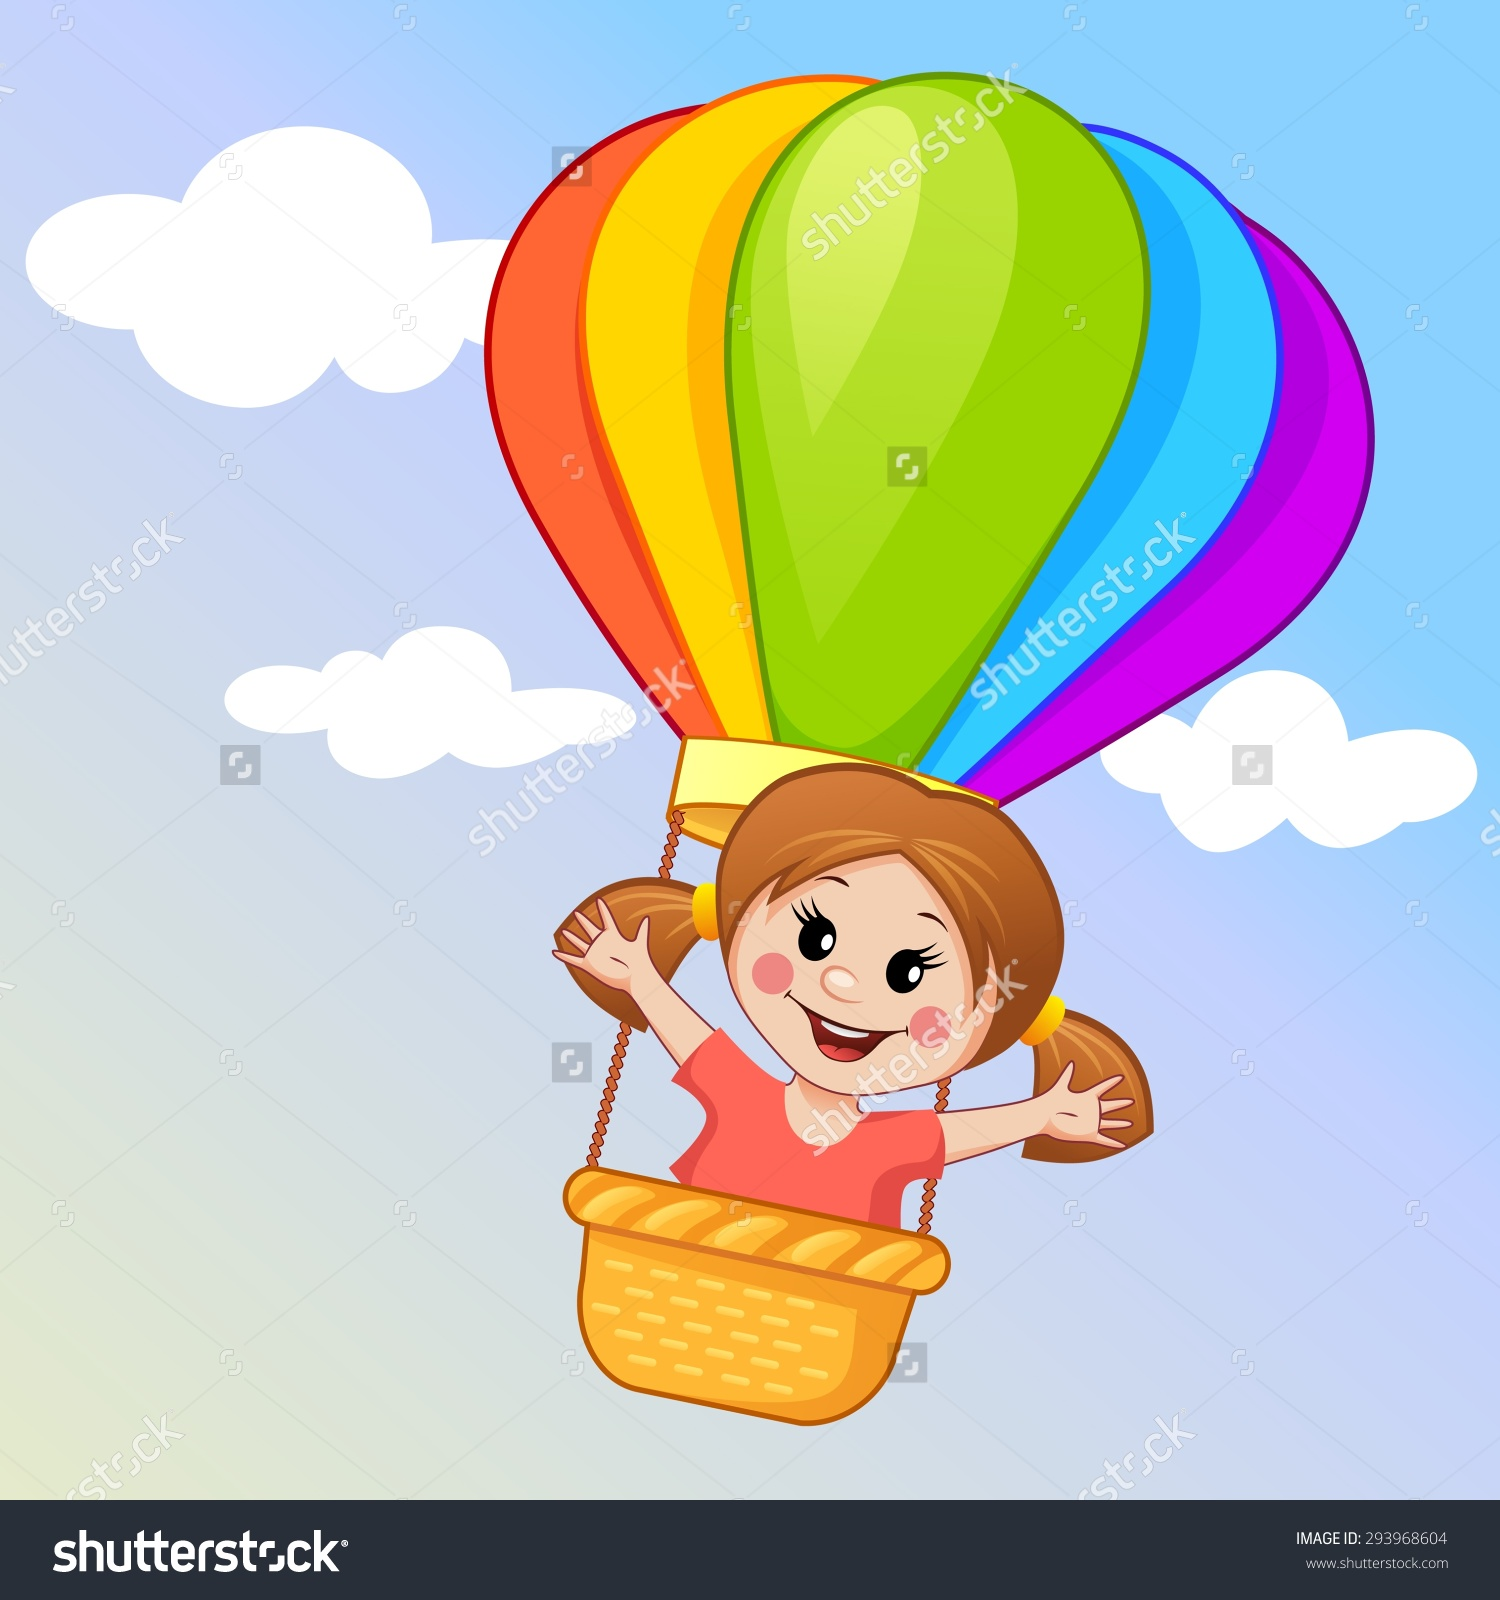 Kids flying with balloon clipart.